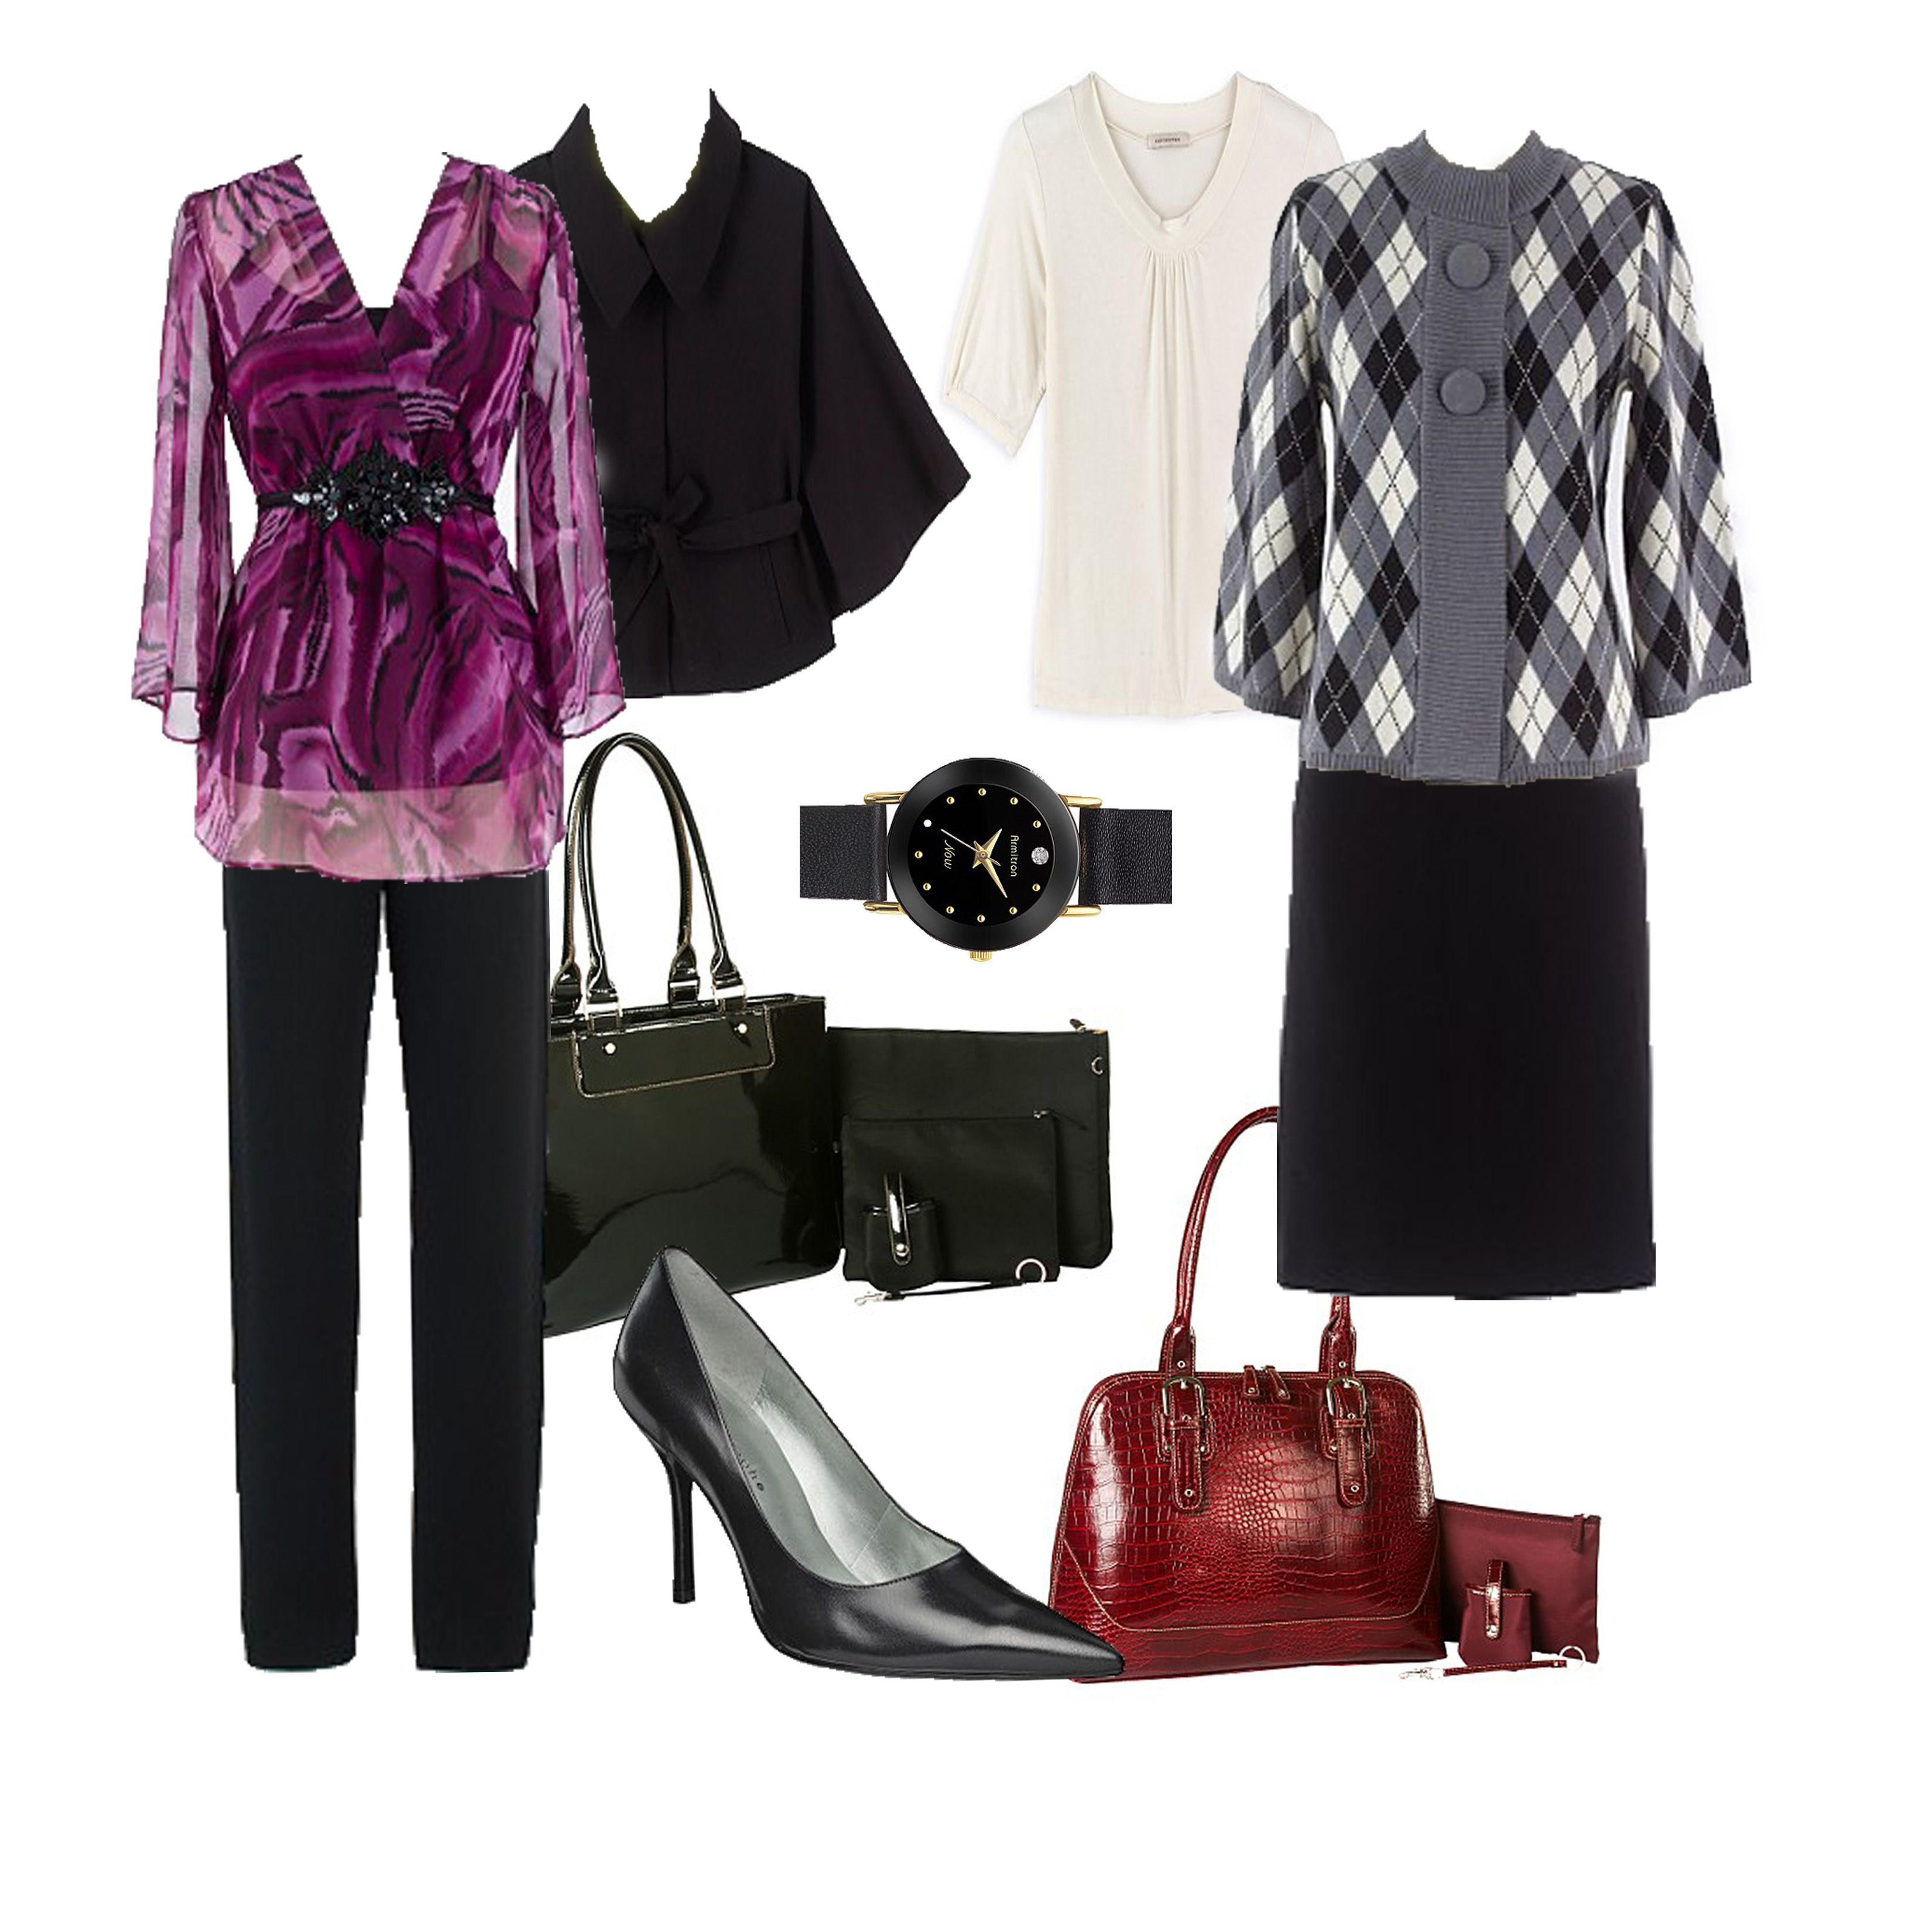 office appropriate clothing from sears love the shoes dressing business casual attire for women photo galleries including lady business attire womens business casual clothing catalogs appropriate business casual